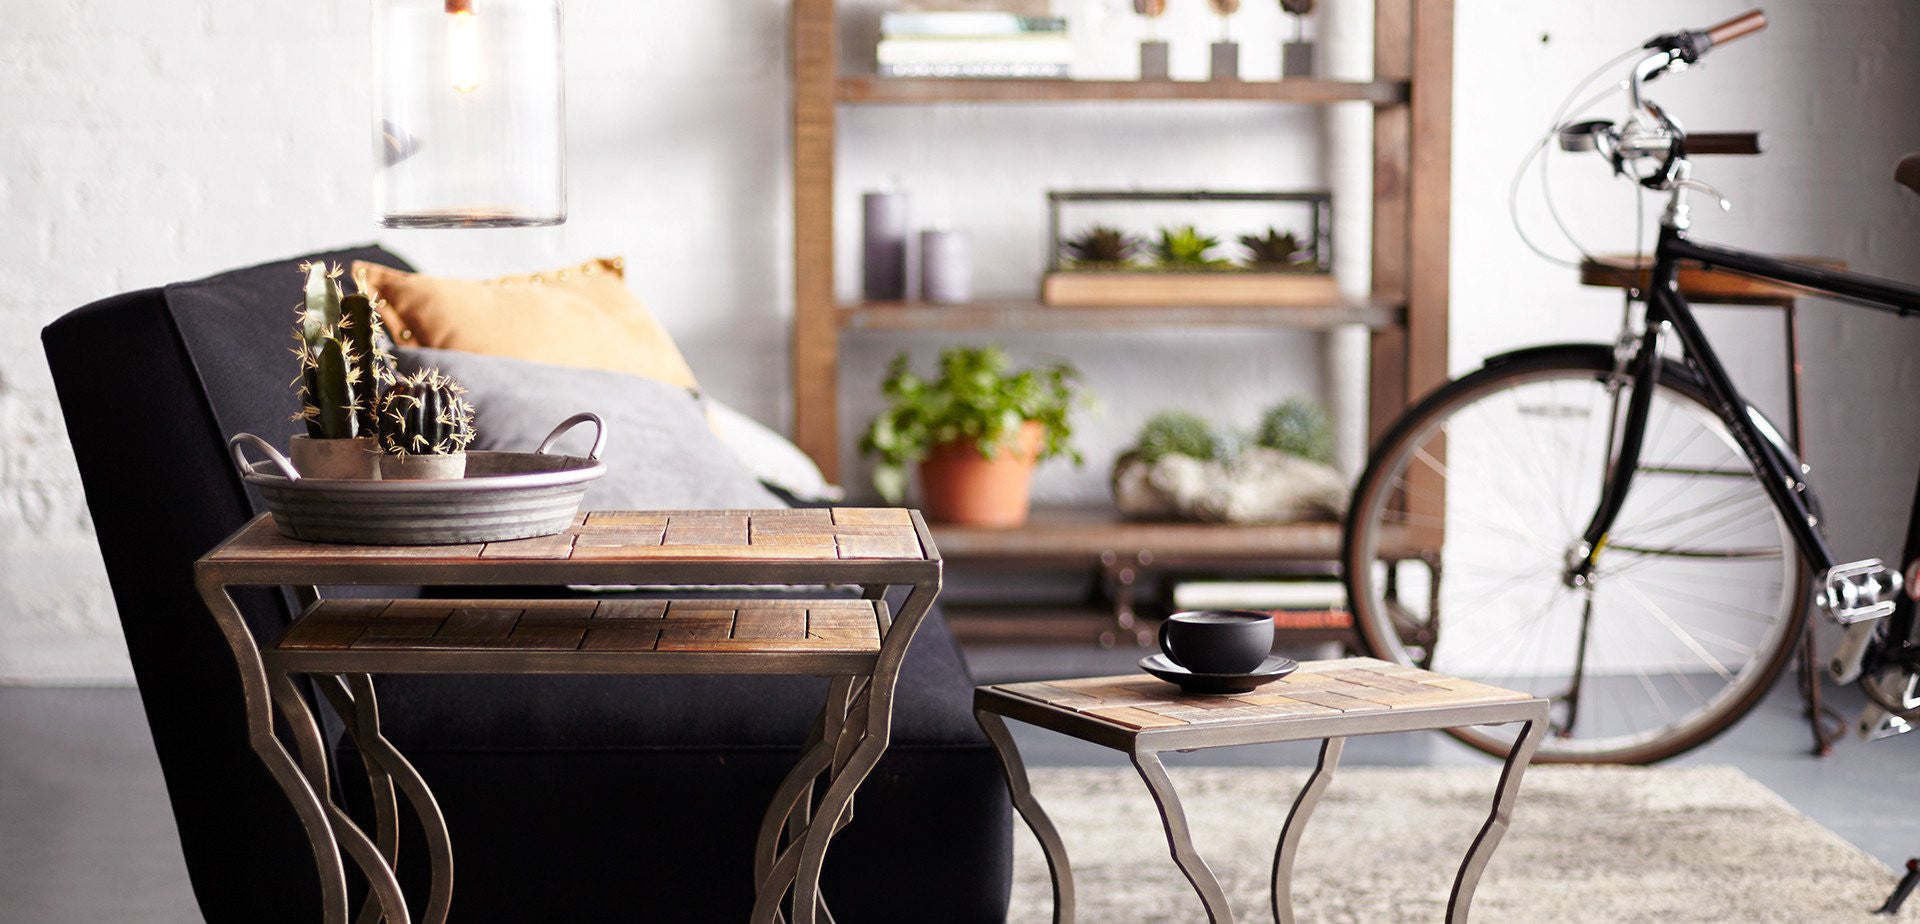 Unique Quality Home Accessories For Your Interiors And Exteriors